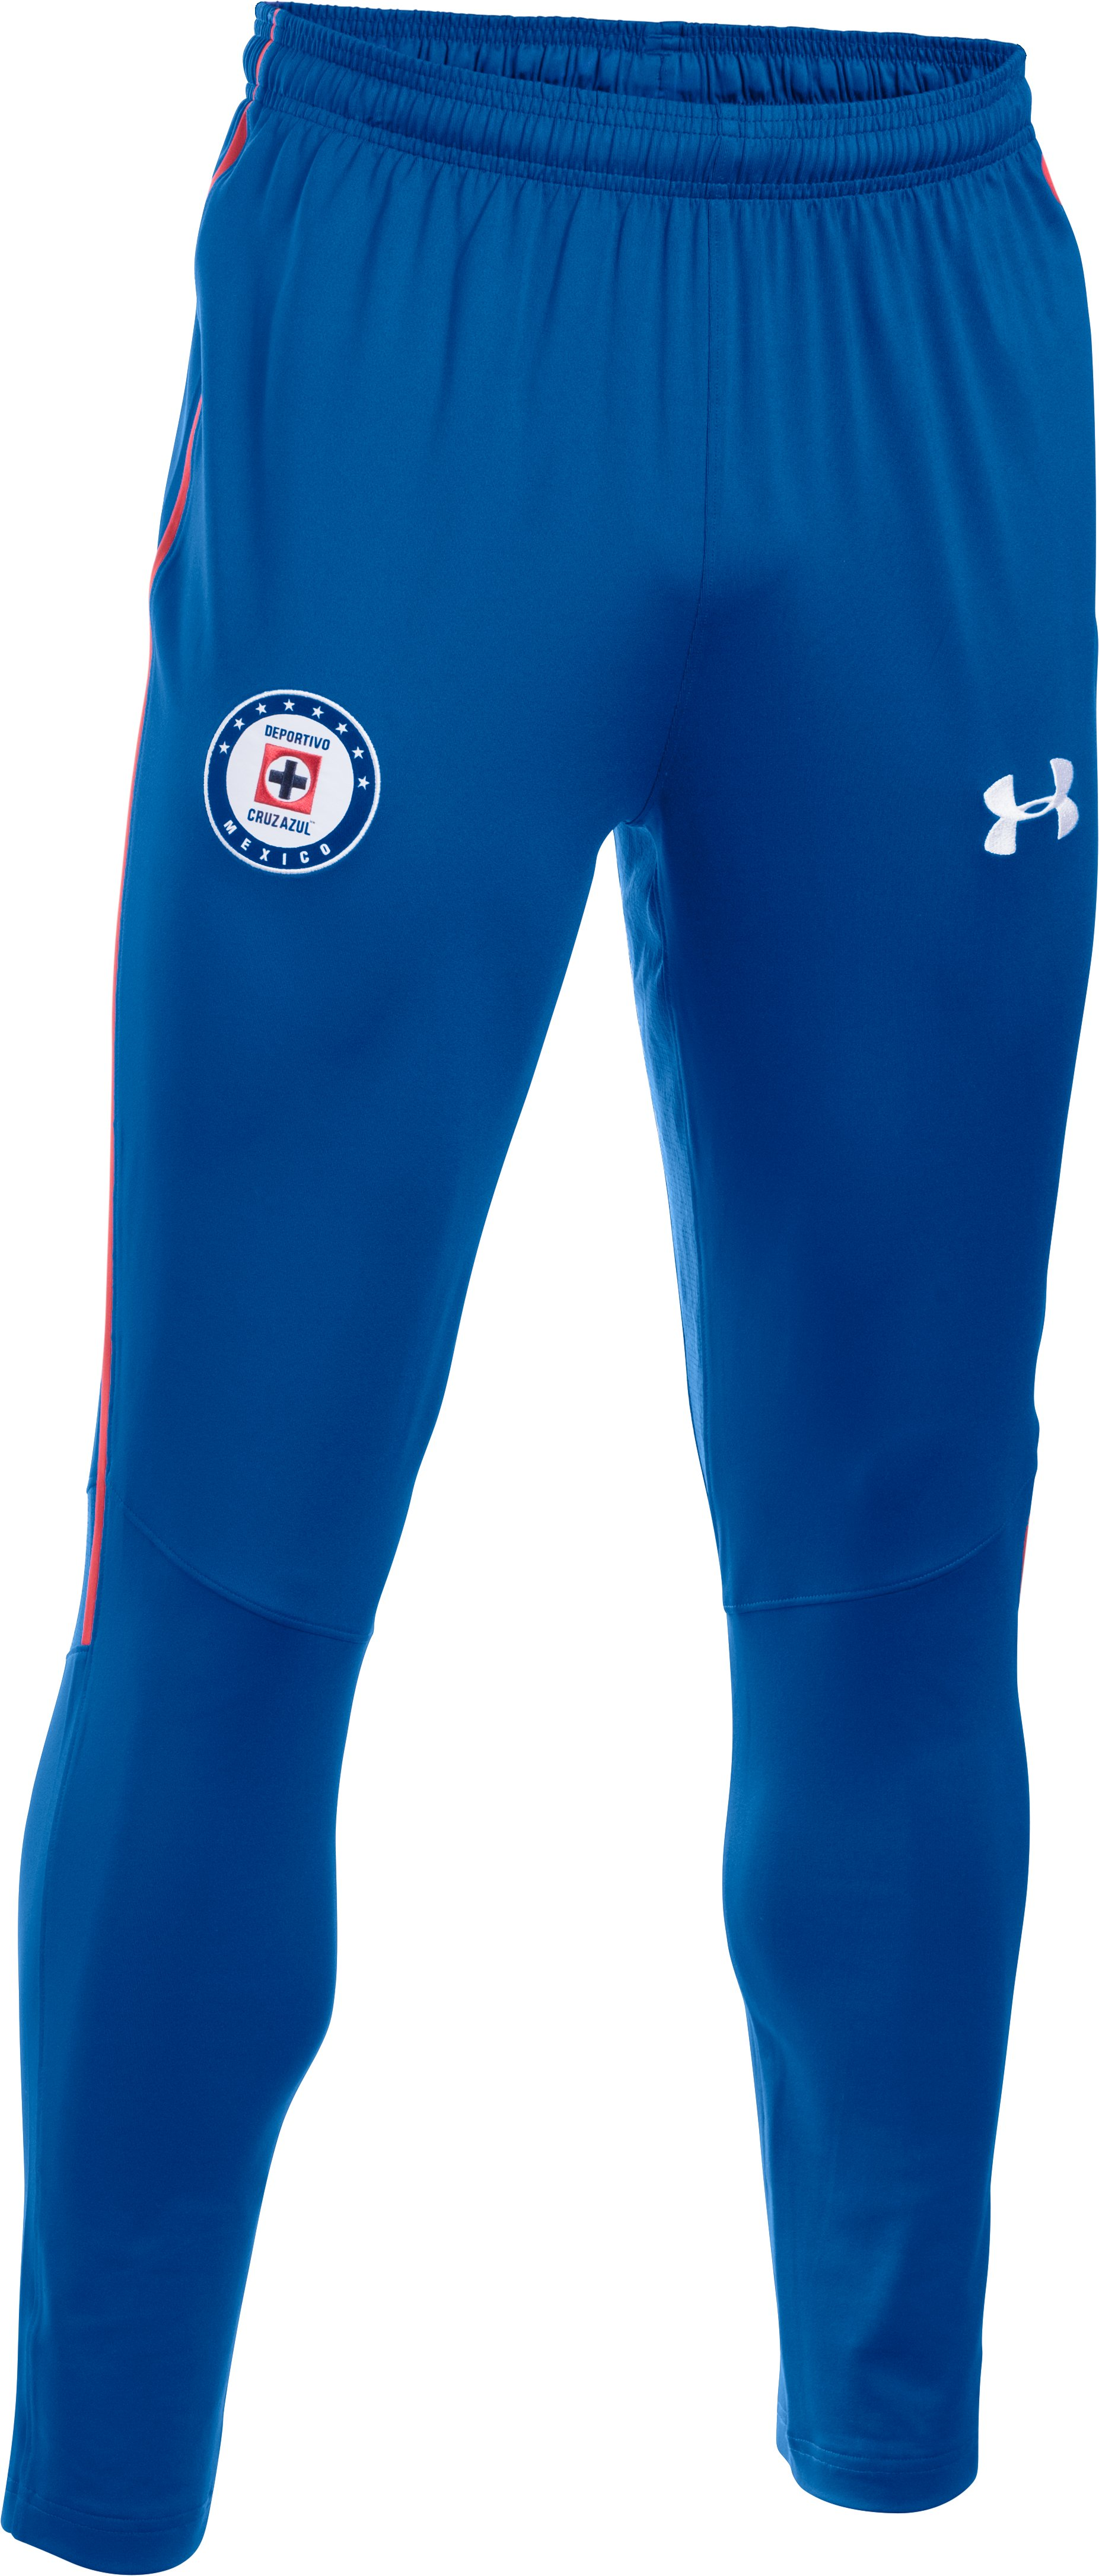 Men's Cruz Azul 16/17 Training Pants, Royal,